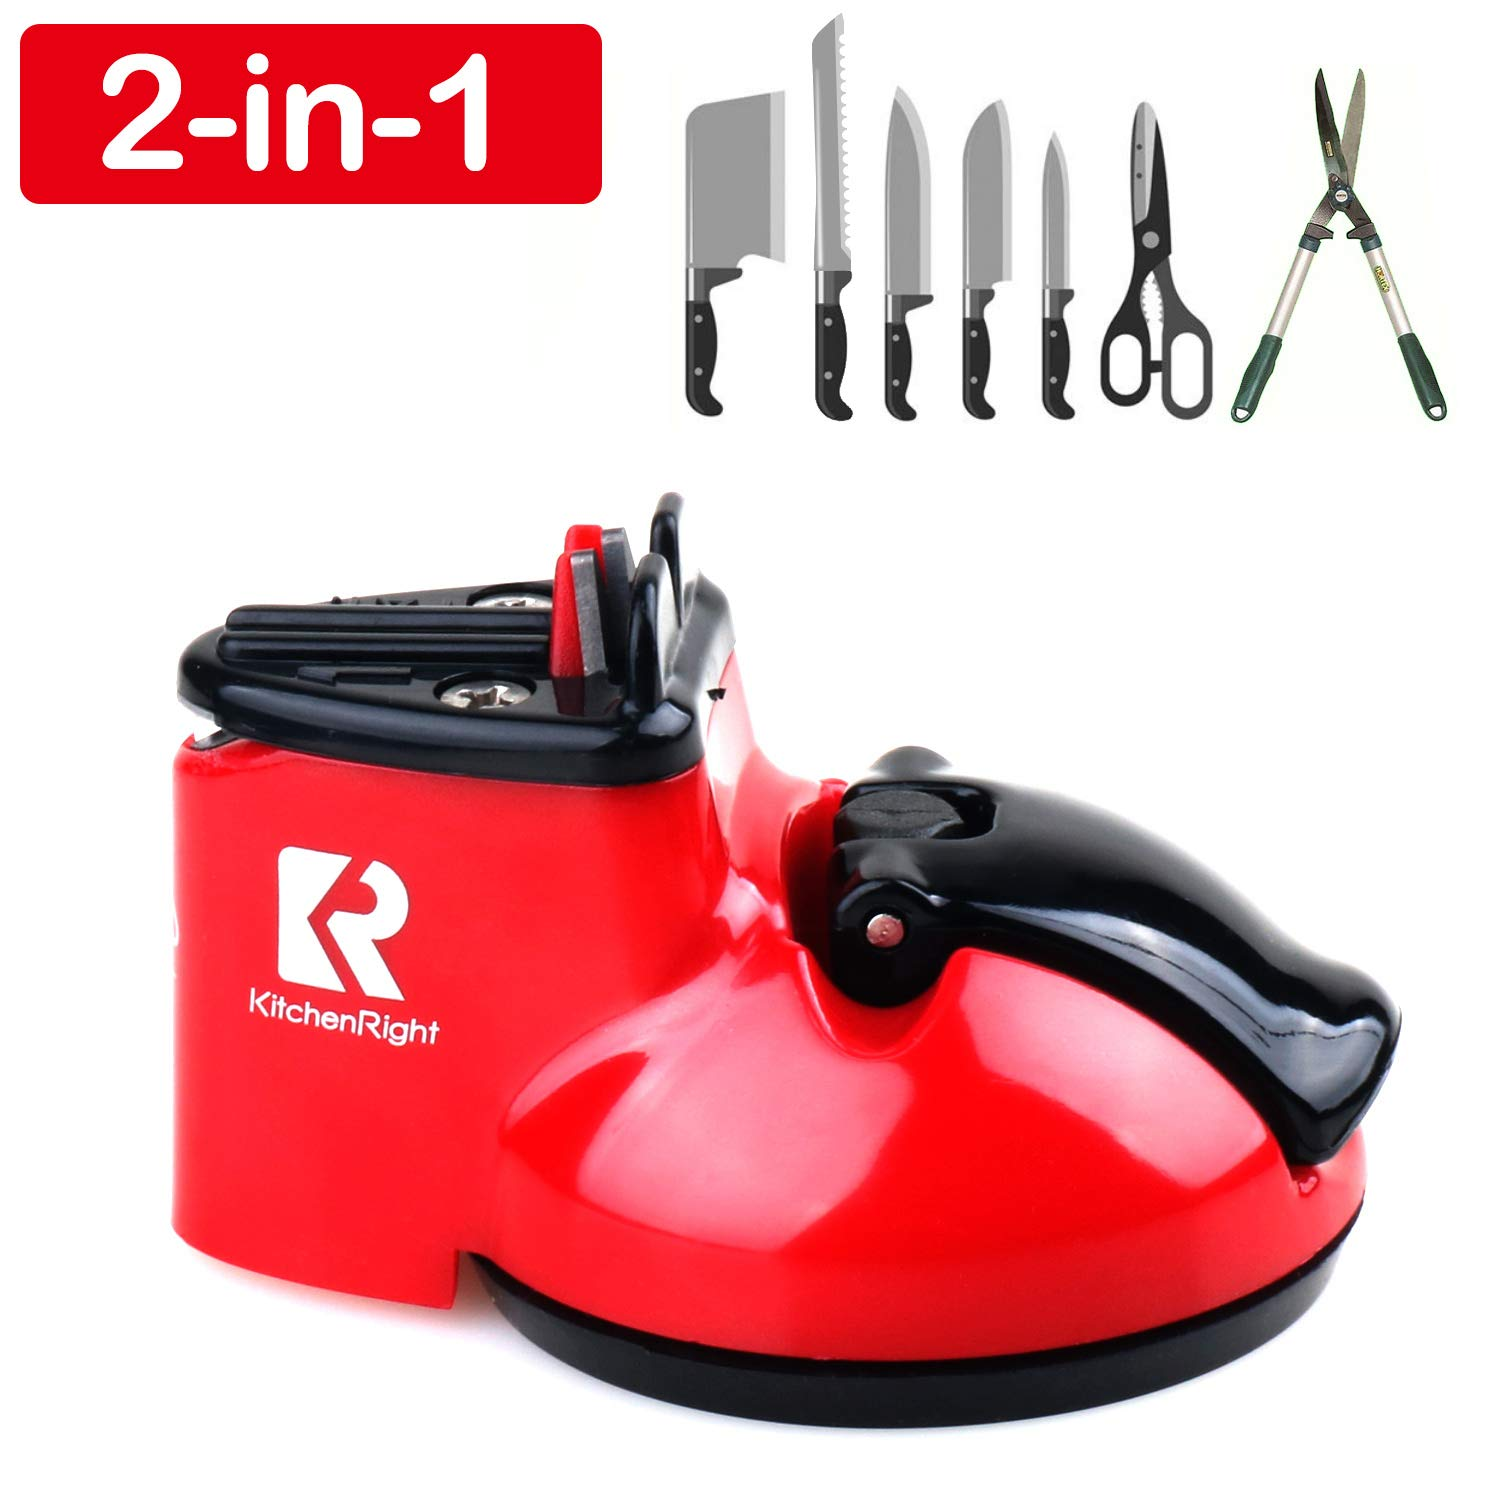 Kitchen Knife Sharpener Scissor Sharpener 2-Stage Knife & Scissor Sharpening Tool Helps Repair Camping & Hiking Precision Perfect,Calibration Easy Safe KitchenRight by KitchenRight (Image #2)